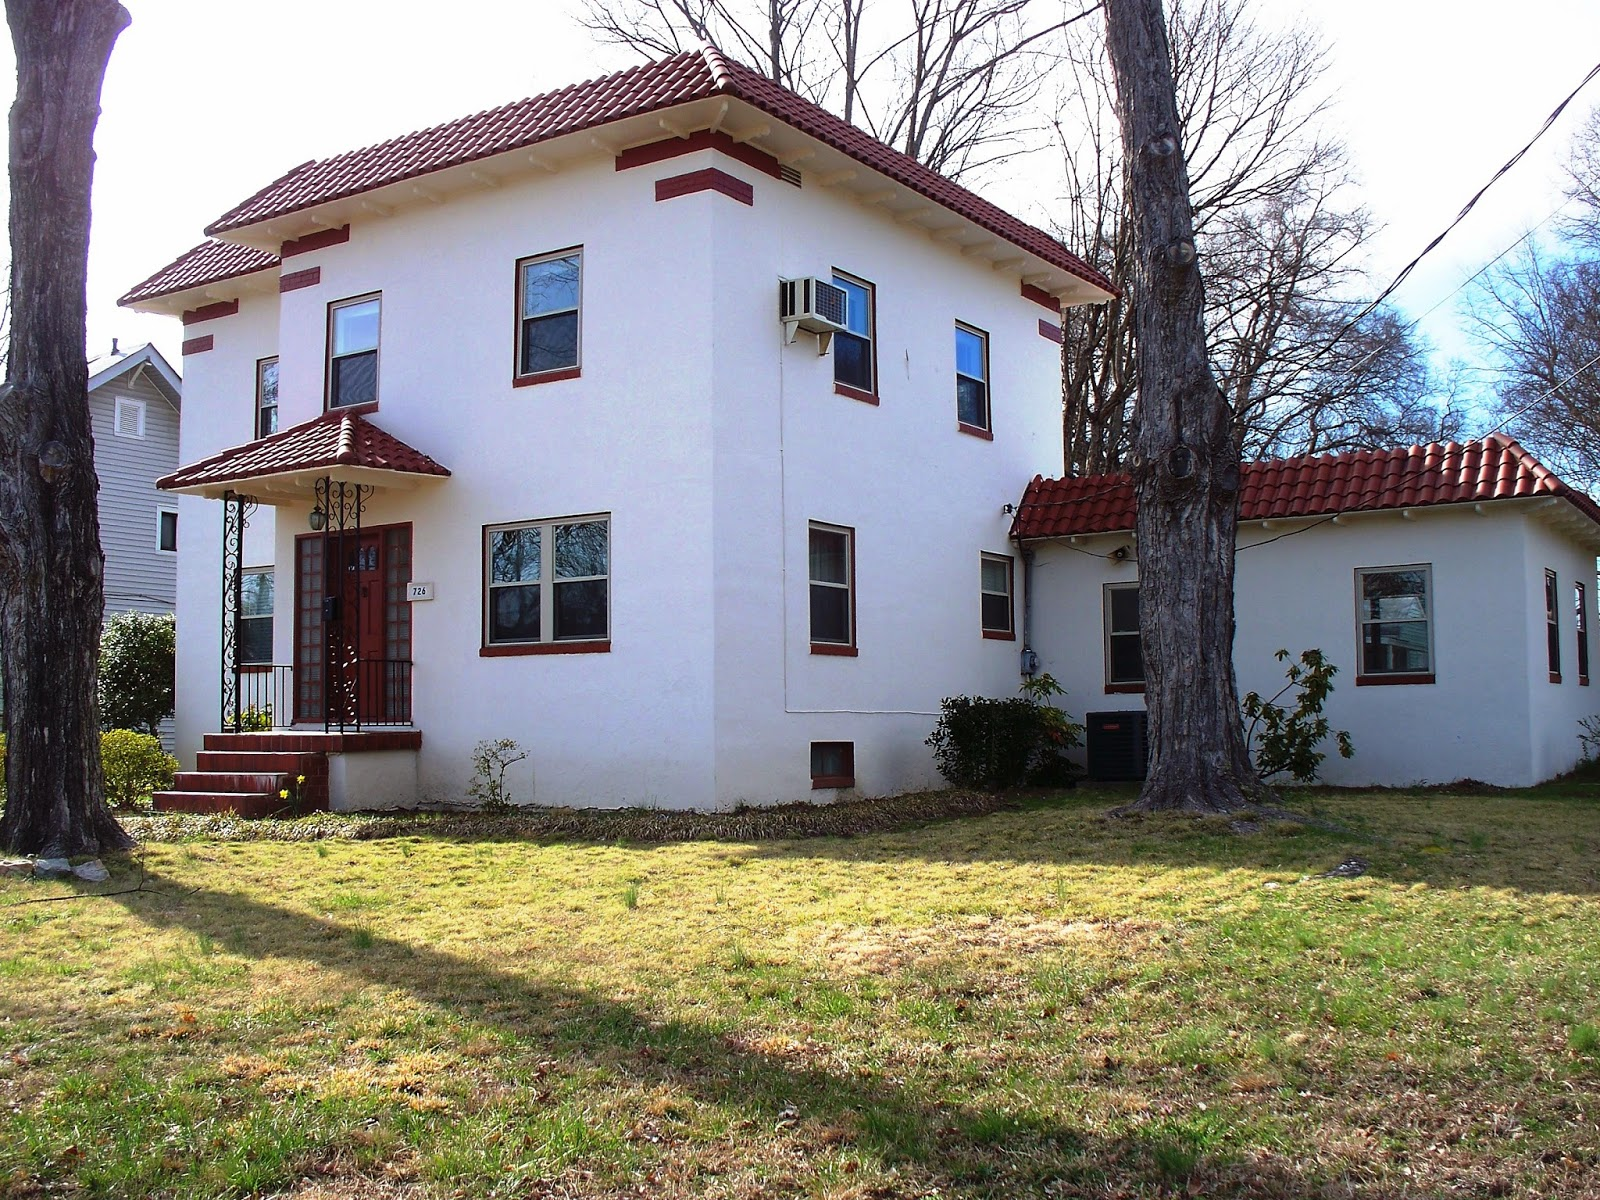 Uncategorized Spanish Stucco salisbury north carolina real estate fully restored c 1946 this 2 story circa 1800 square foot home is a solid stucco over brick and masonry spanish colonial revival hom